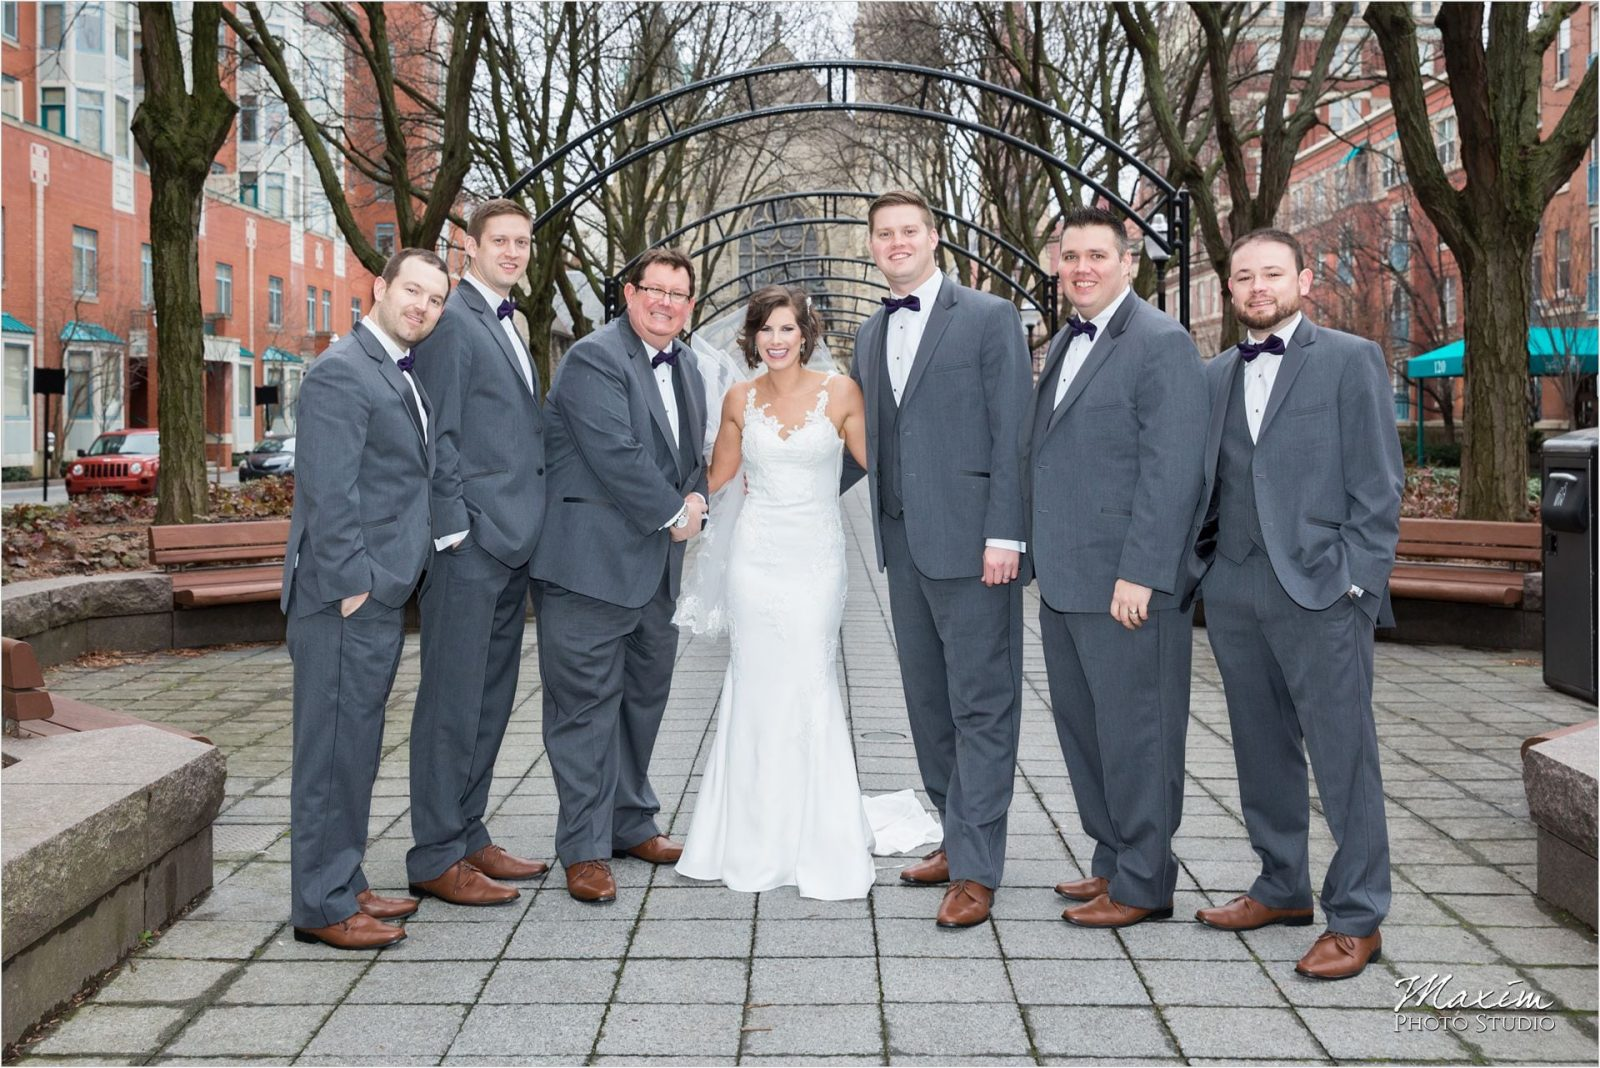 Garfield Park Cincinnati bride winter wedding